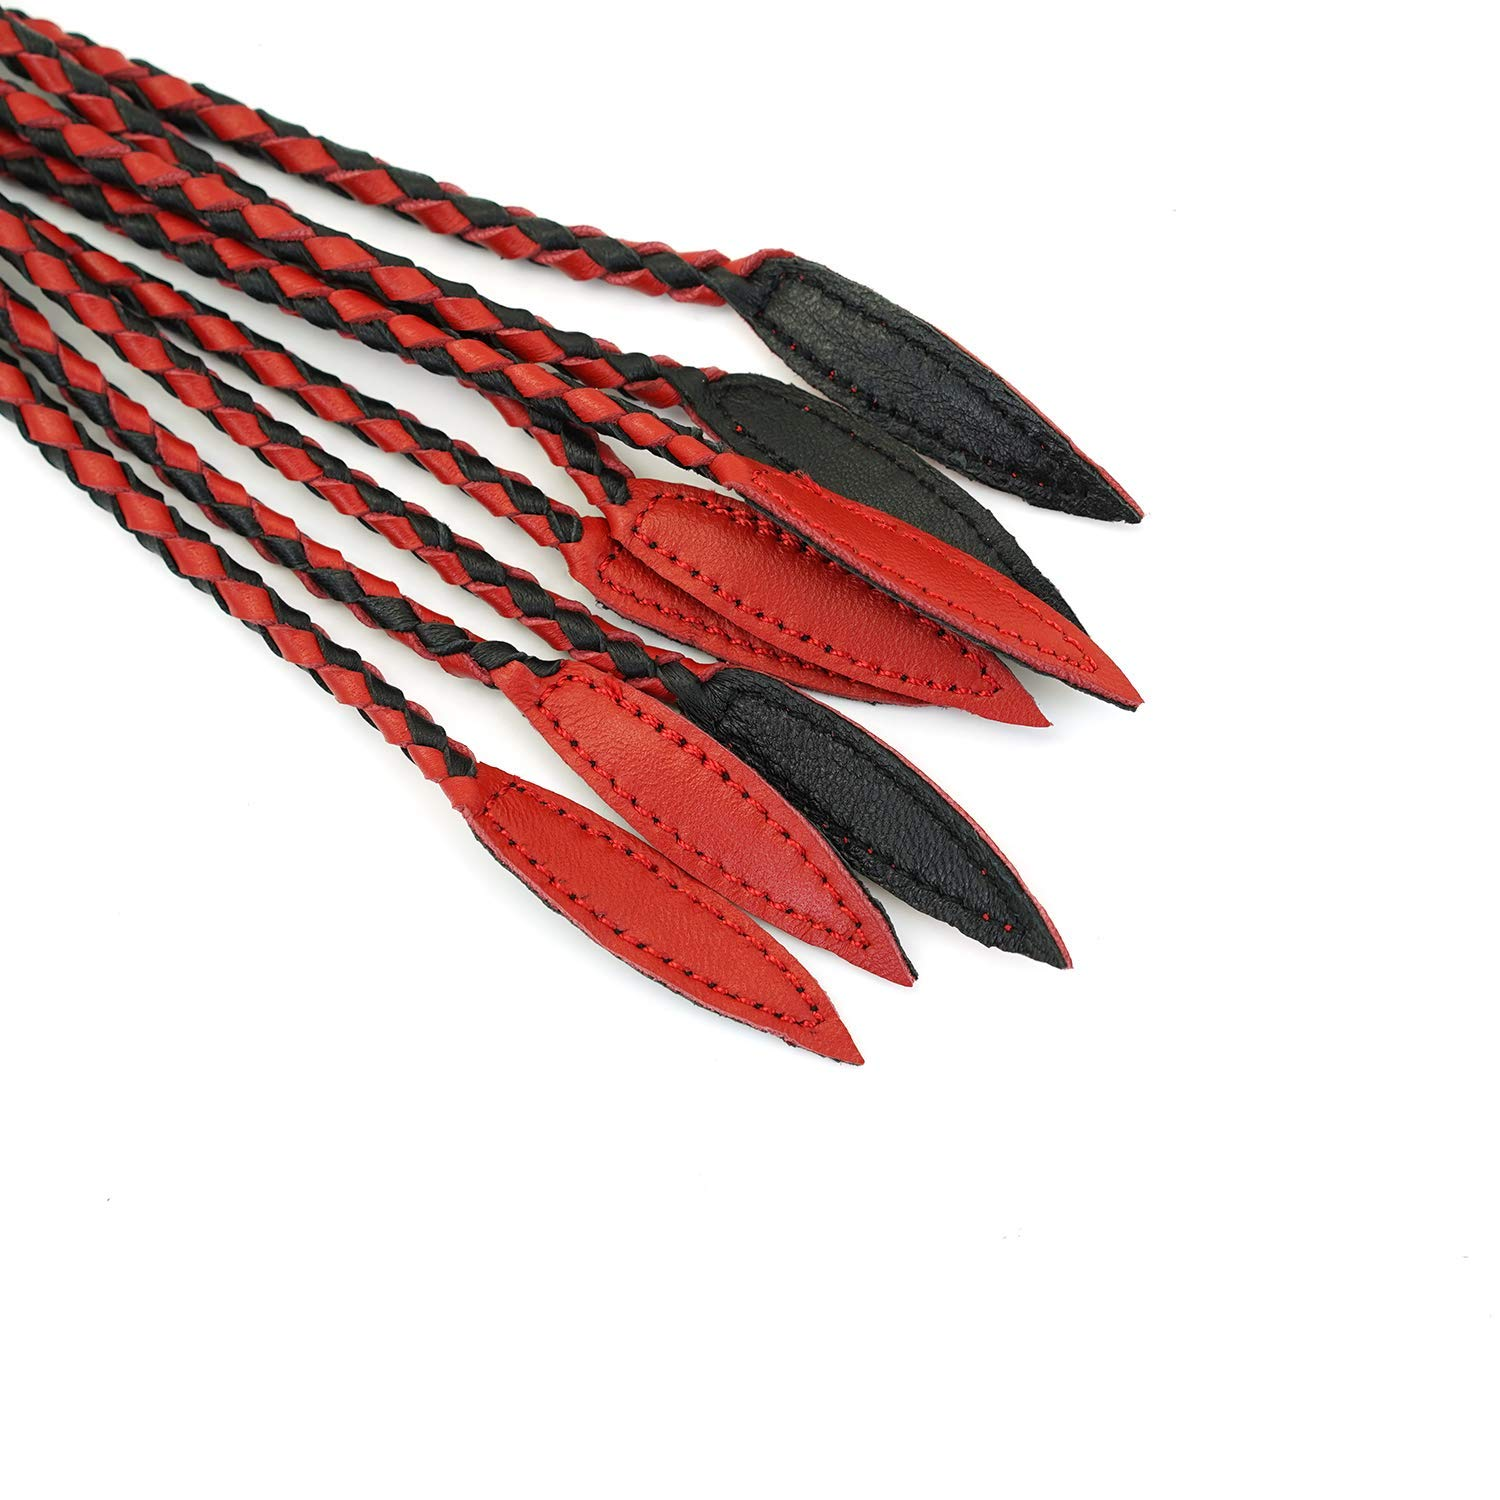 Black/&Red Premium Quality Leather and Suede Braided Flogger Riding Horse Whip with Braided Handle Wrapped in Leather and Suede Braided Handle Tails